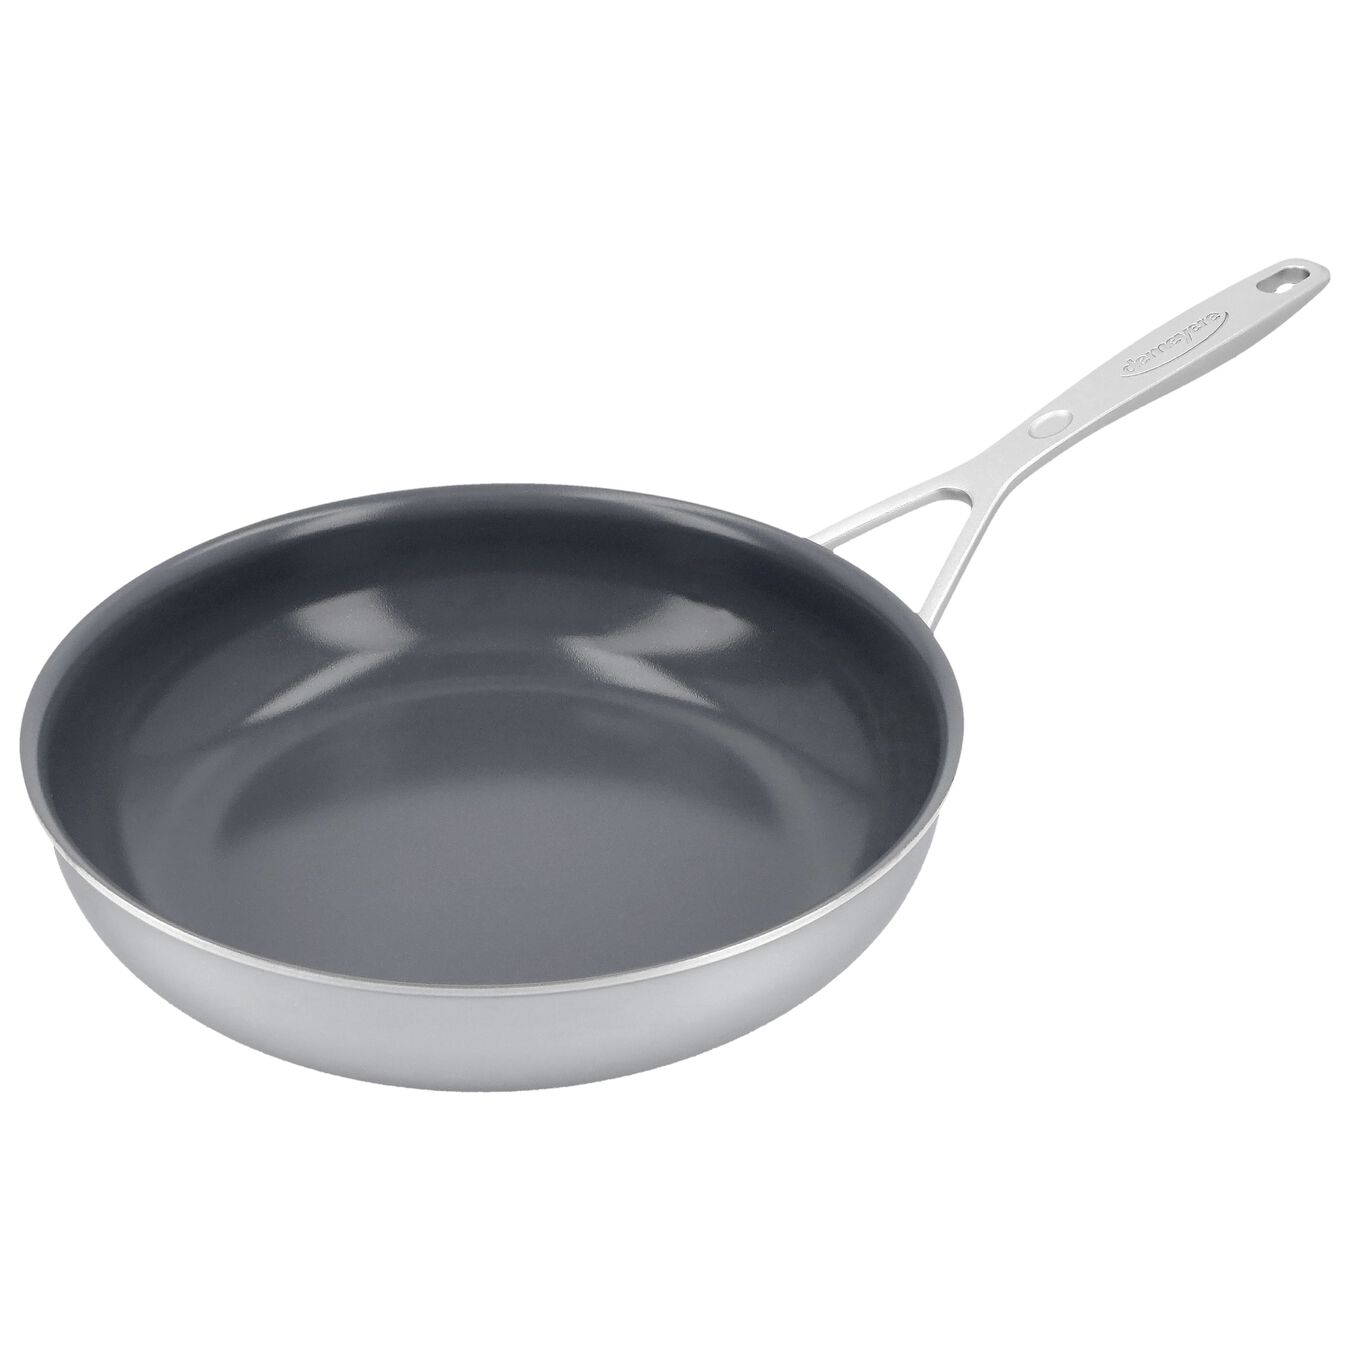 9.5-inch, 18/10 Stainless Steel, Non-stick, Ceramic, Frying pan,,large 4